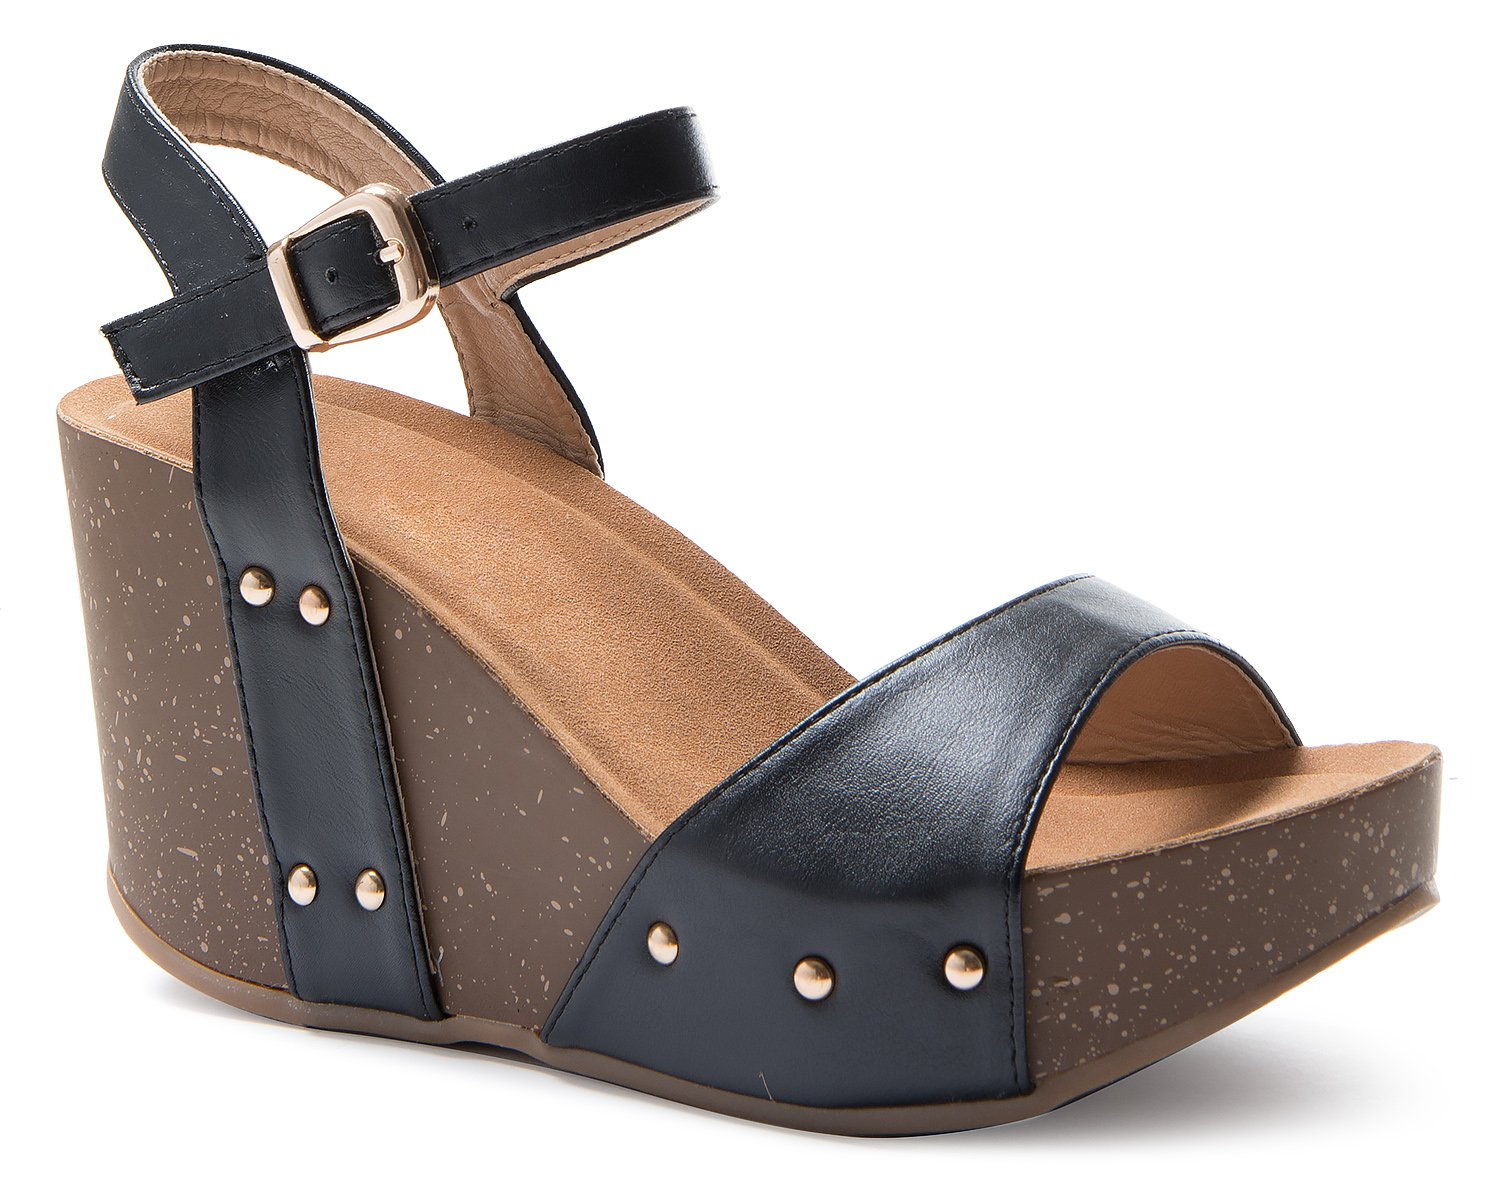 OLIVIA K Women's Open Toe Strappy Mid Wedge Light Heel Wood Decoration Buckle Shoes Sandals